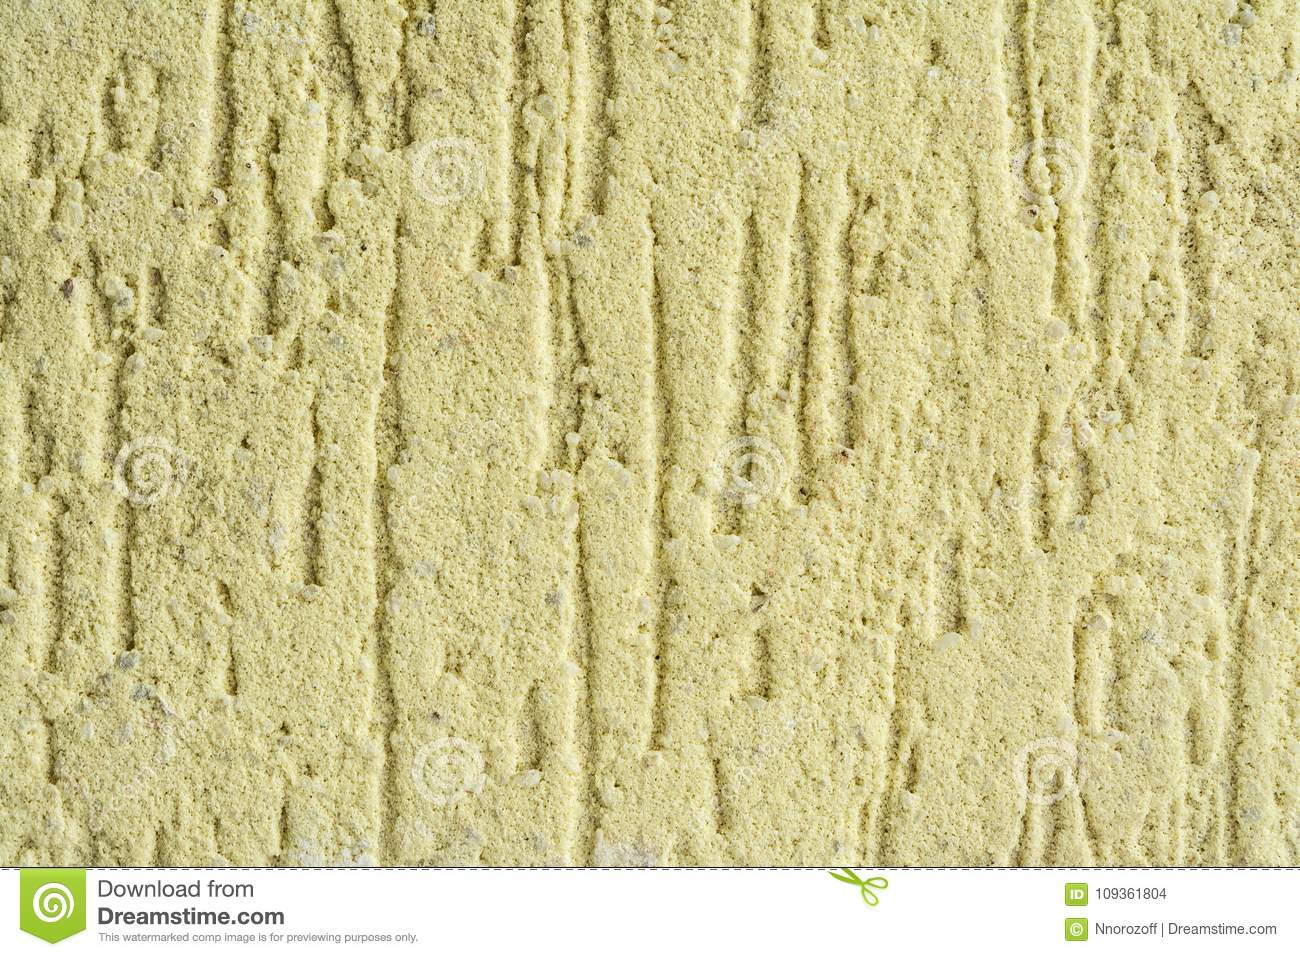 Texture Of A Concrete Wall, Layer Of Decorative Plaster Stock Photo ...